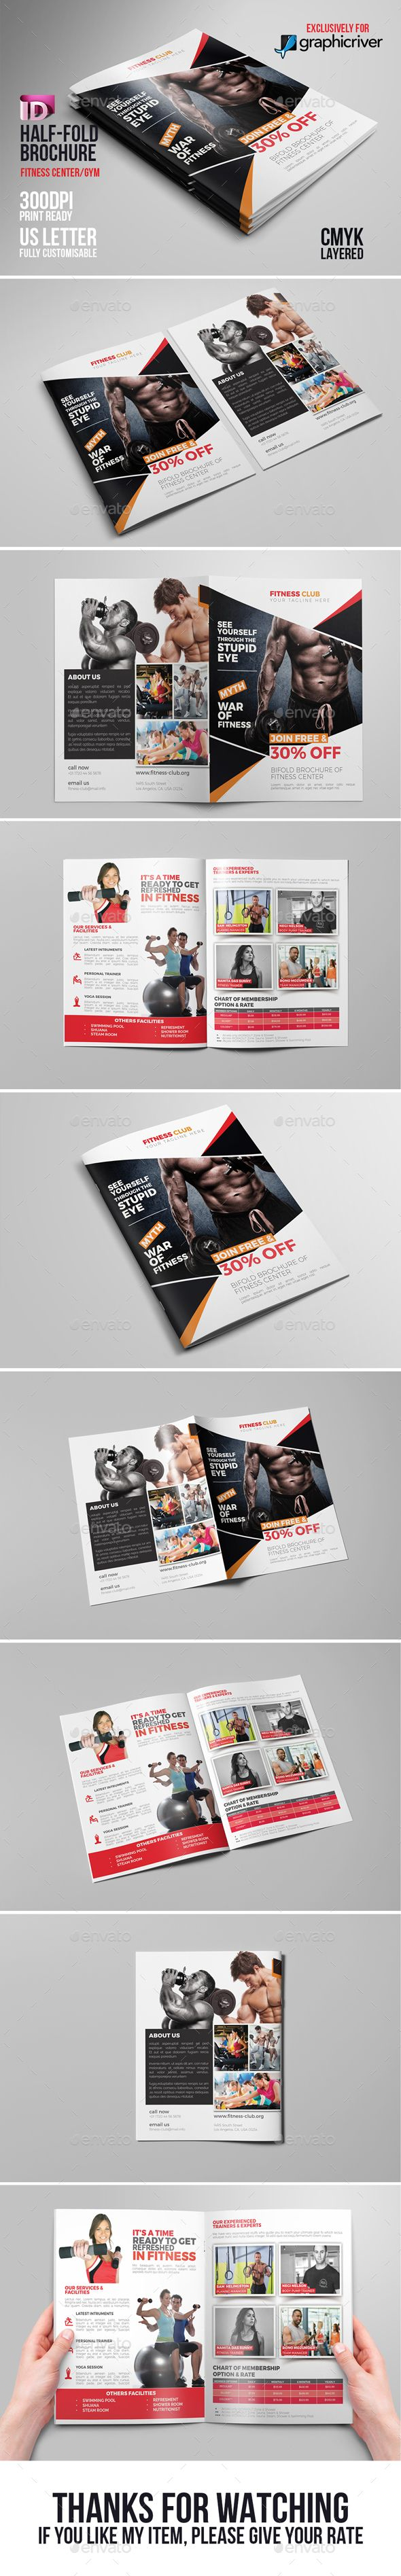 Fitness  Gym  Sports Bifold  Gym Brochure